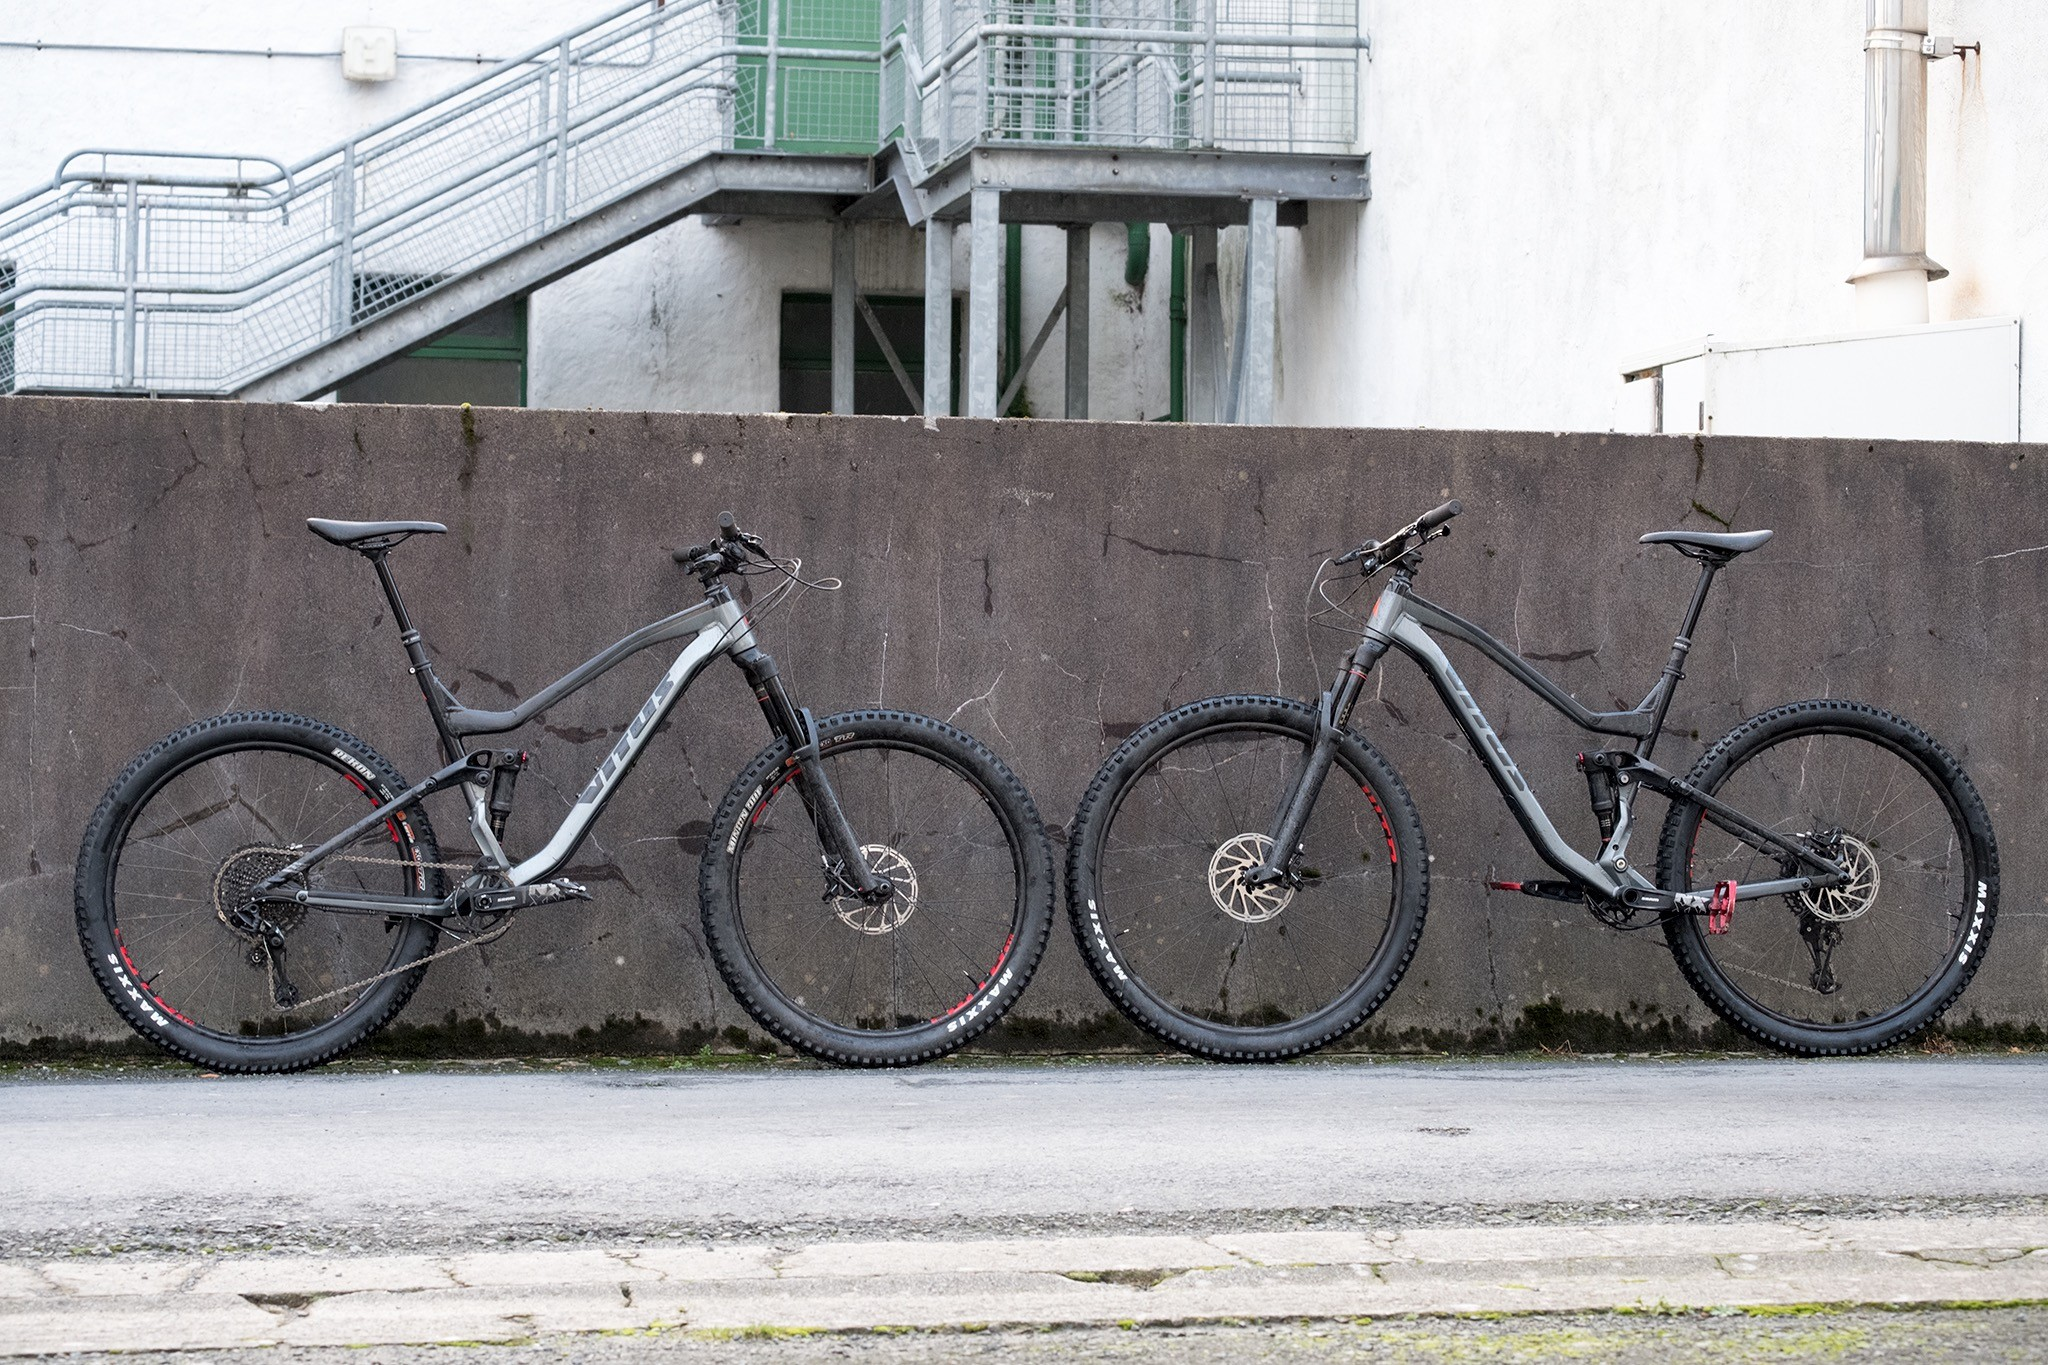 We spent three days in Northern Ireland trying out both the 27.5 and 29er version of the Escarpe